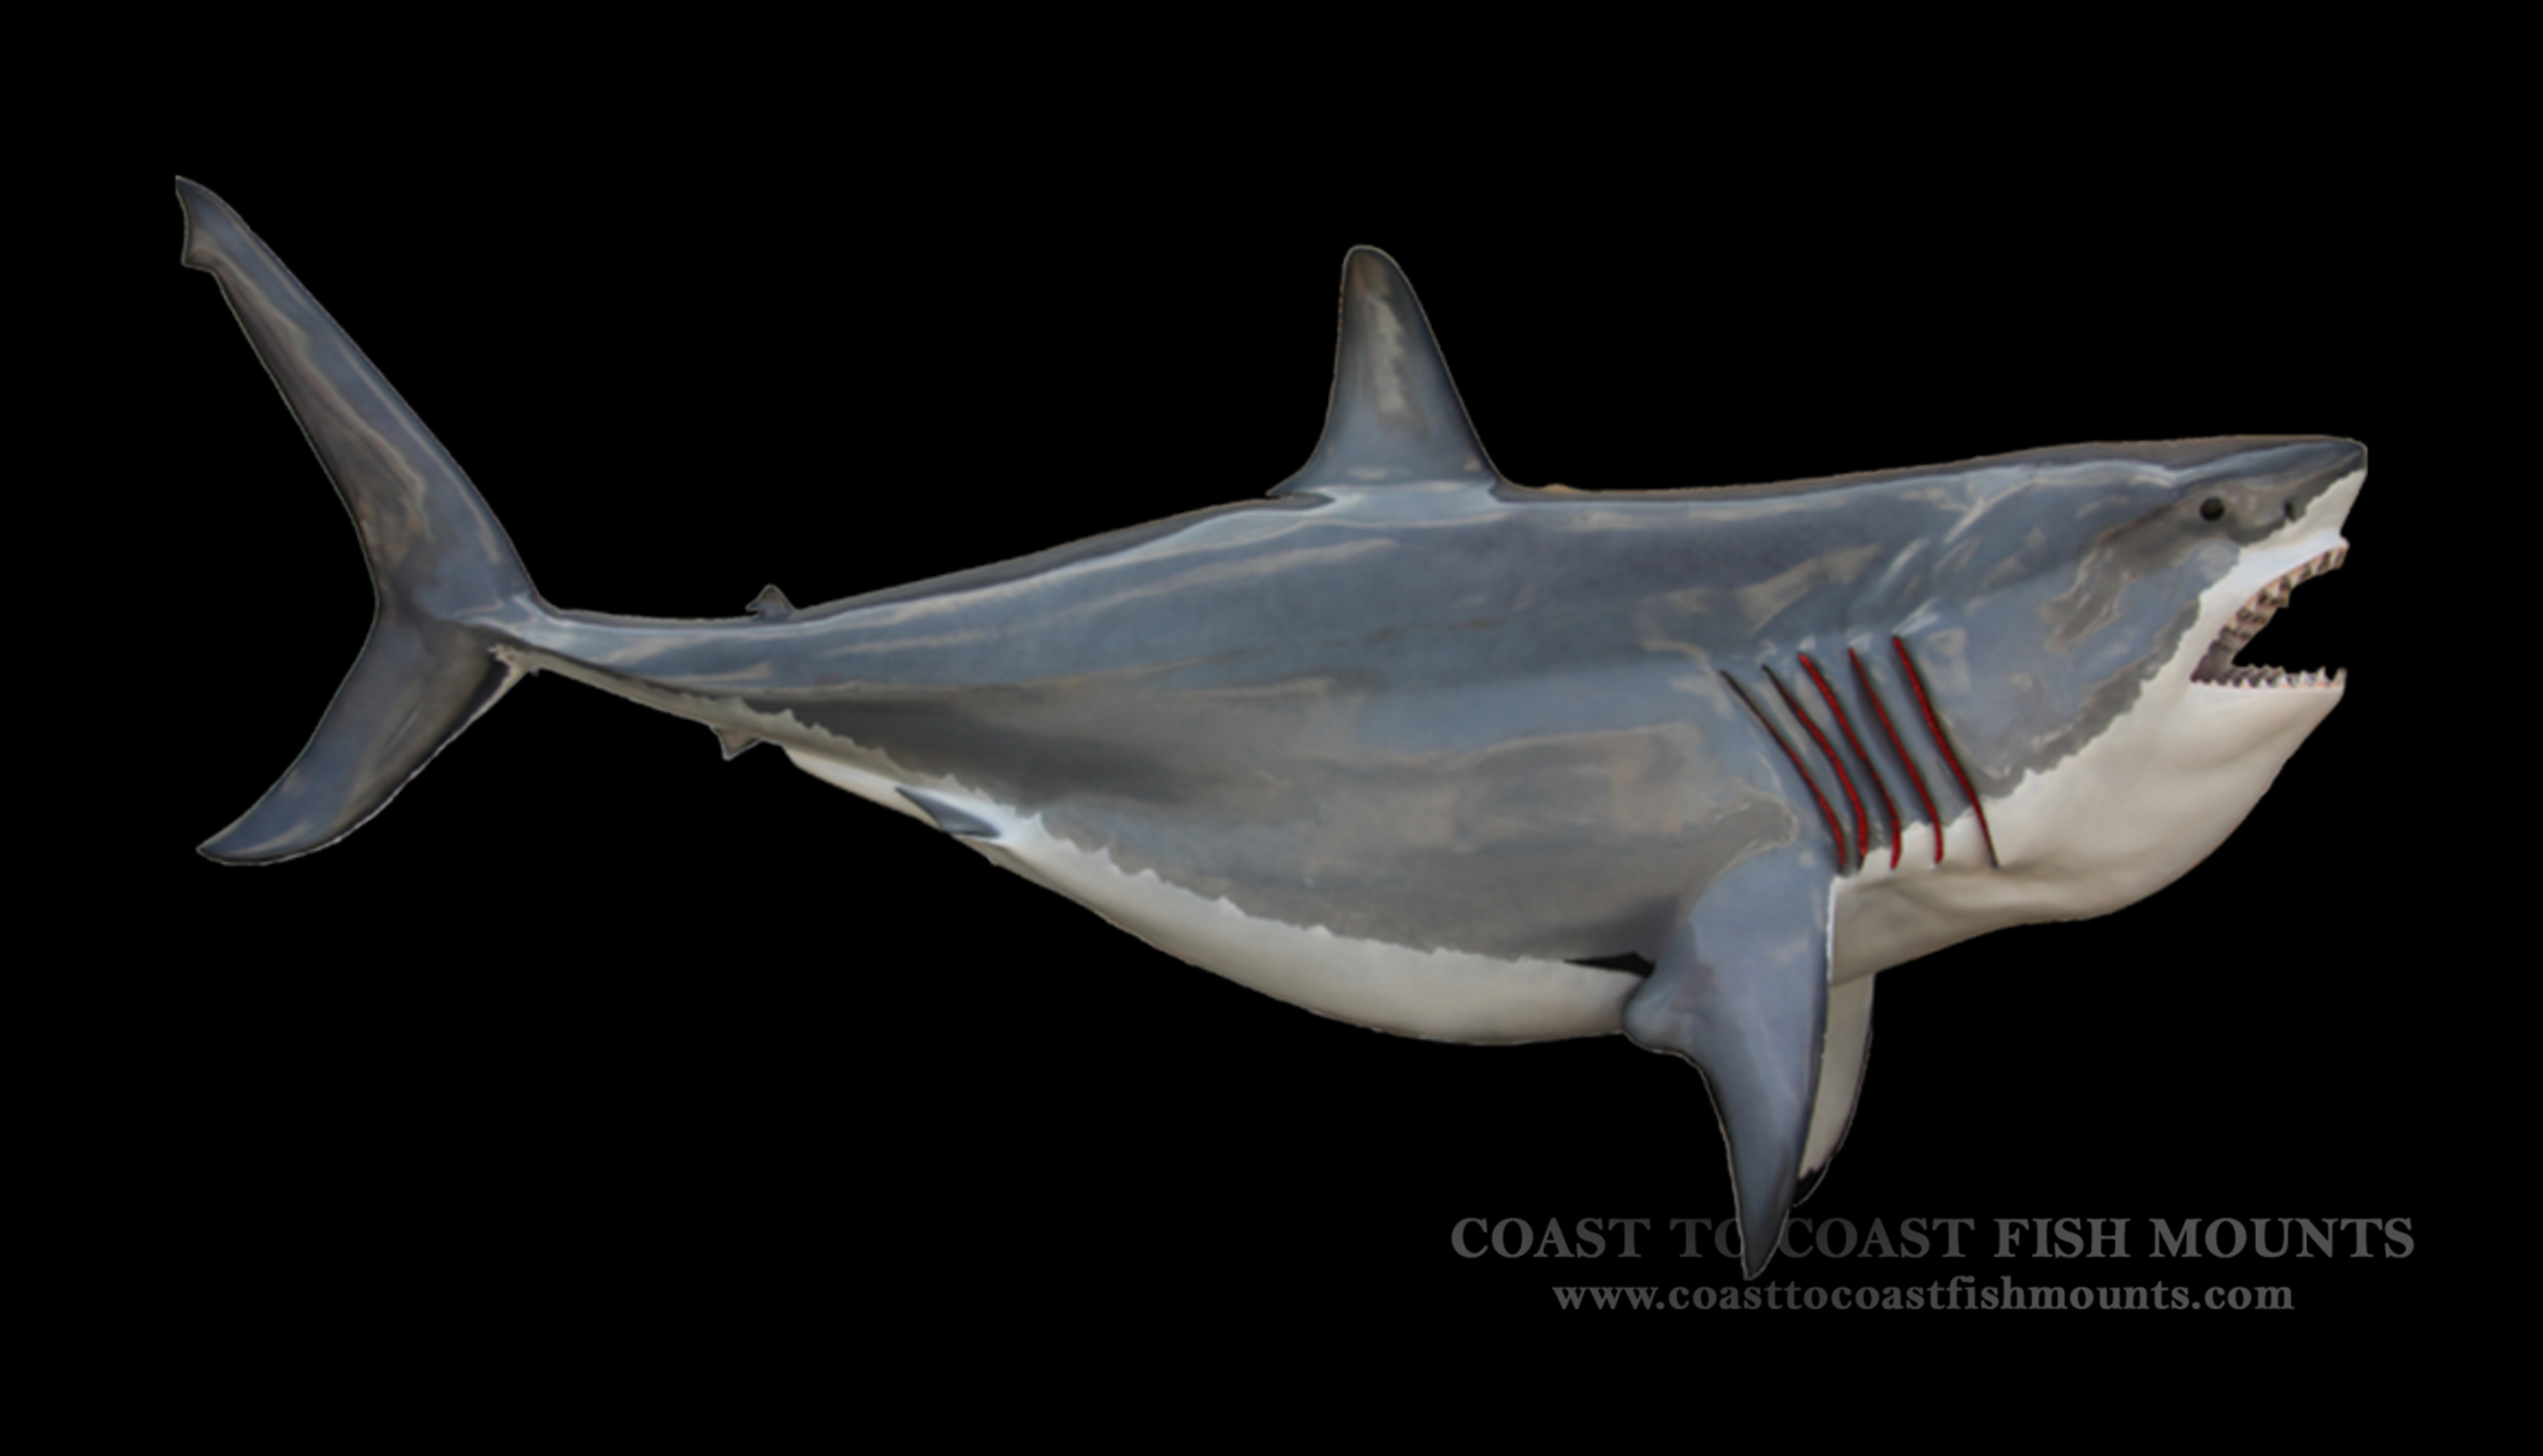 Great white shark fish mount and fish replicas coast to coast great white shark fish mount altavistaventures Image collections